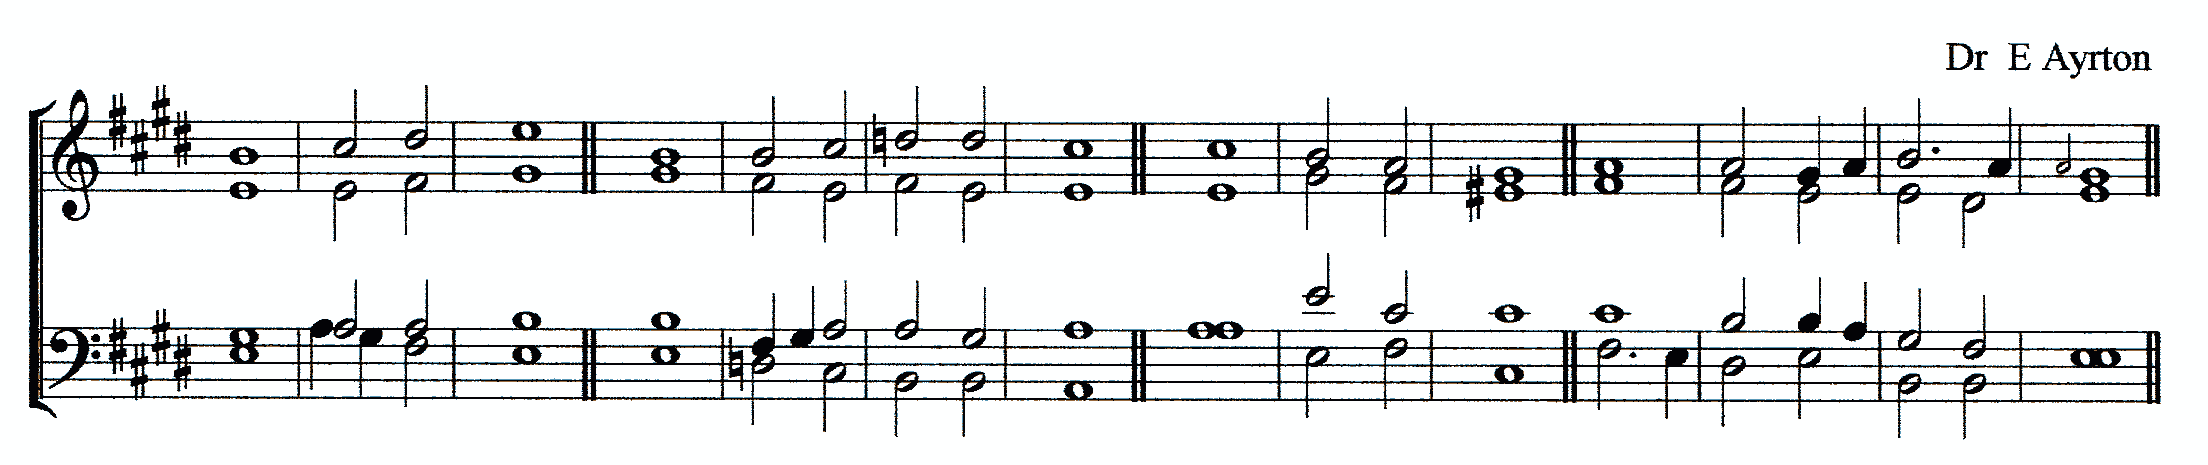 Double chant in E major by Doctor Edmund Ayrton